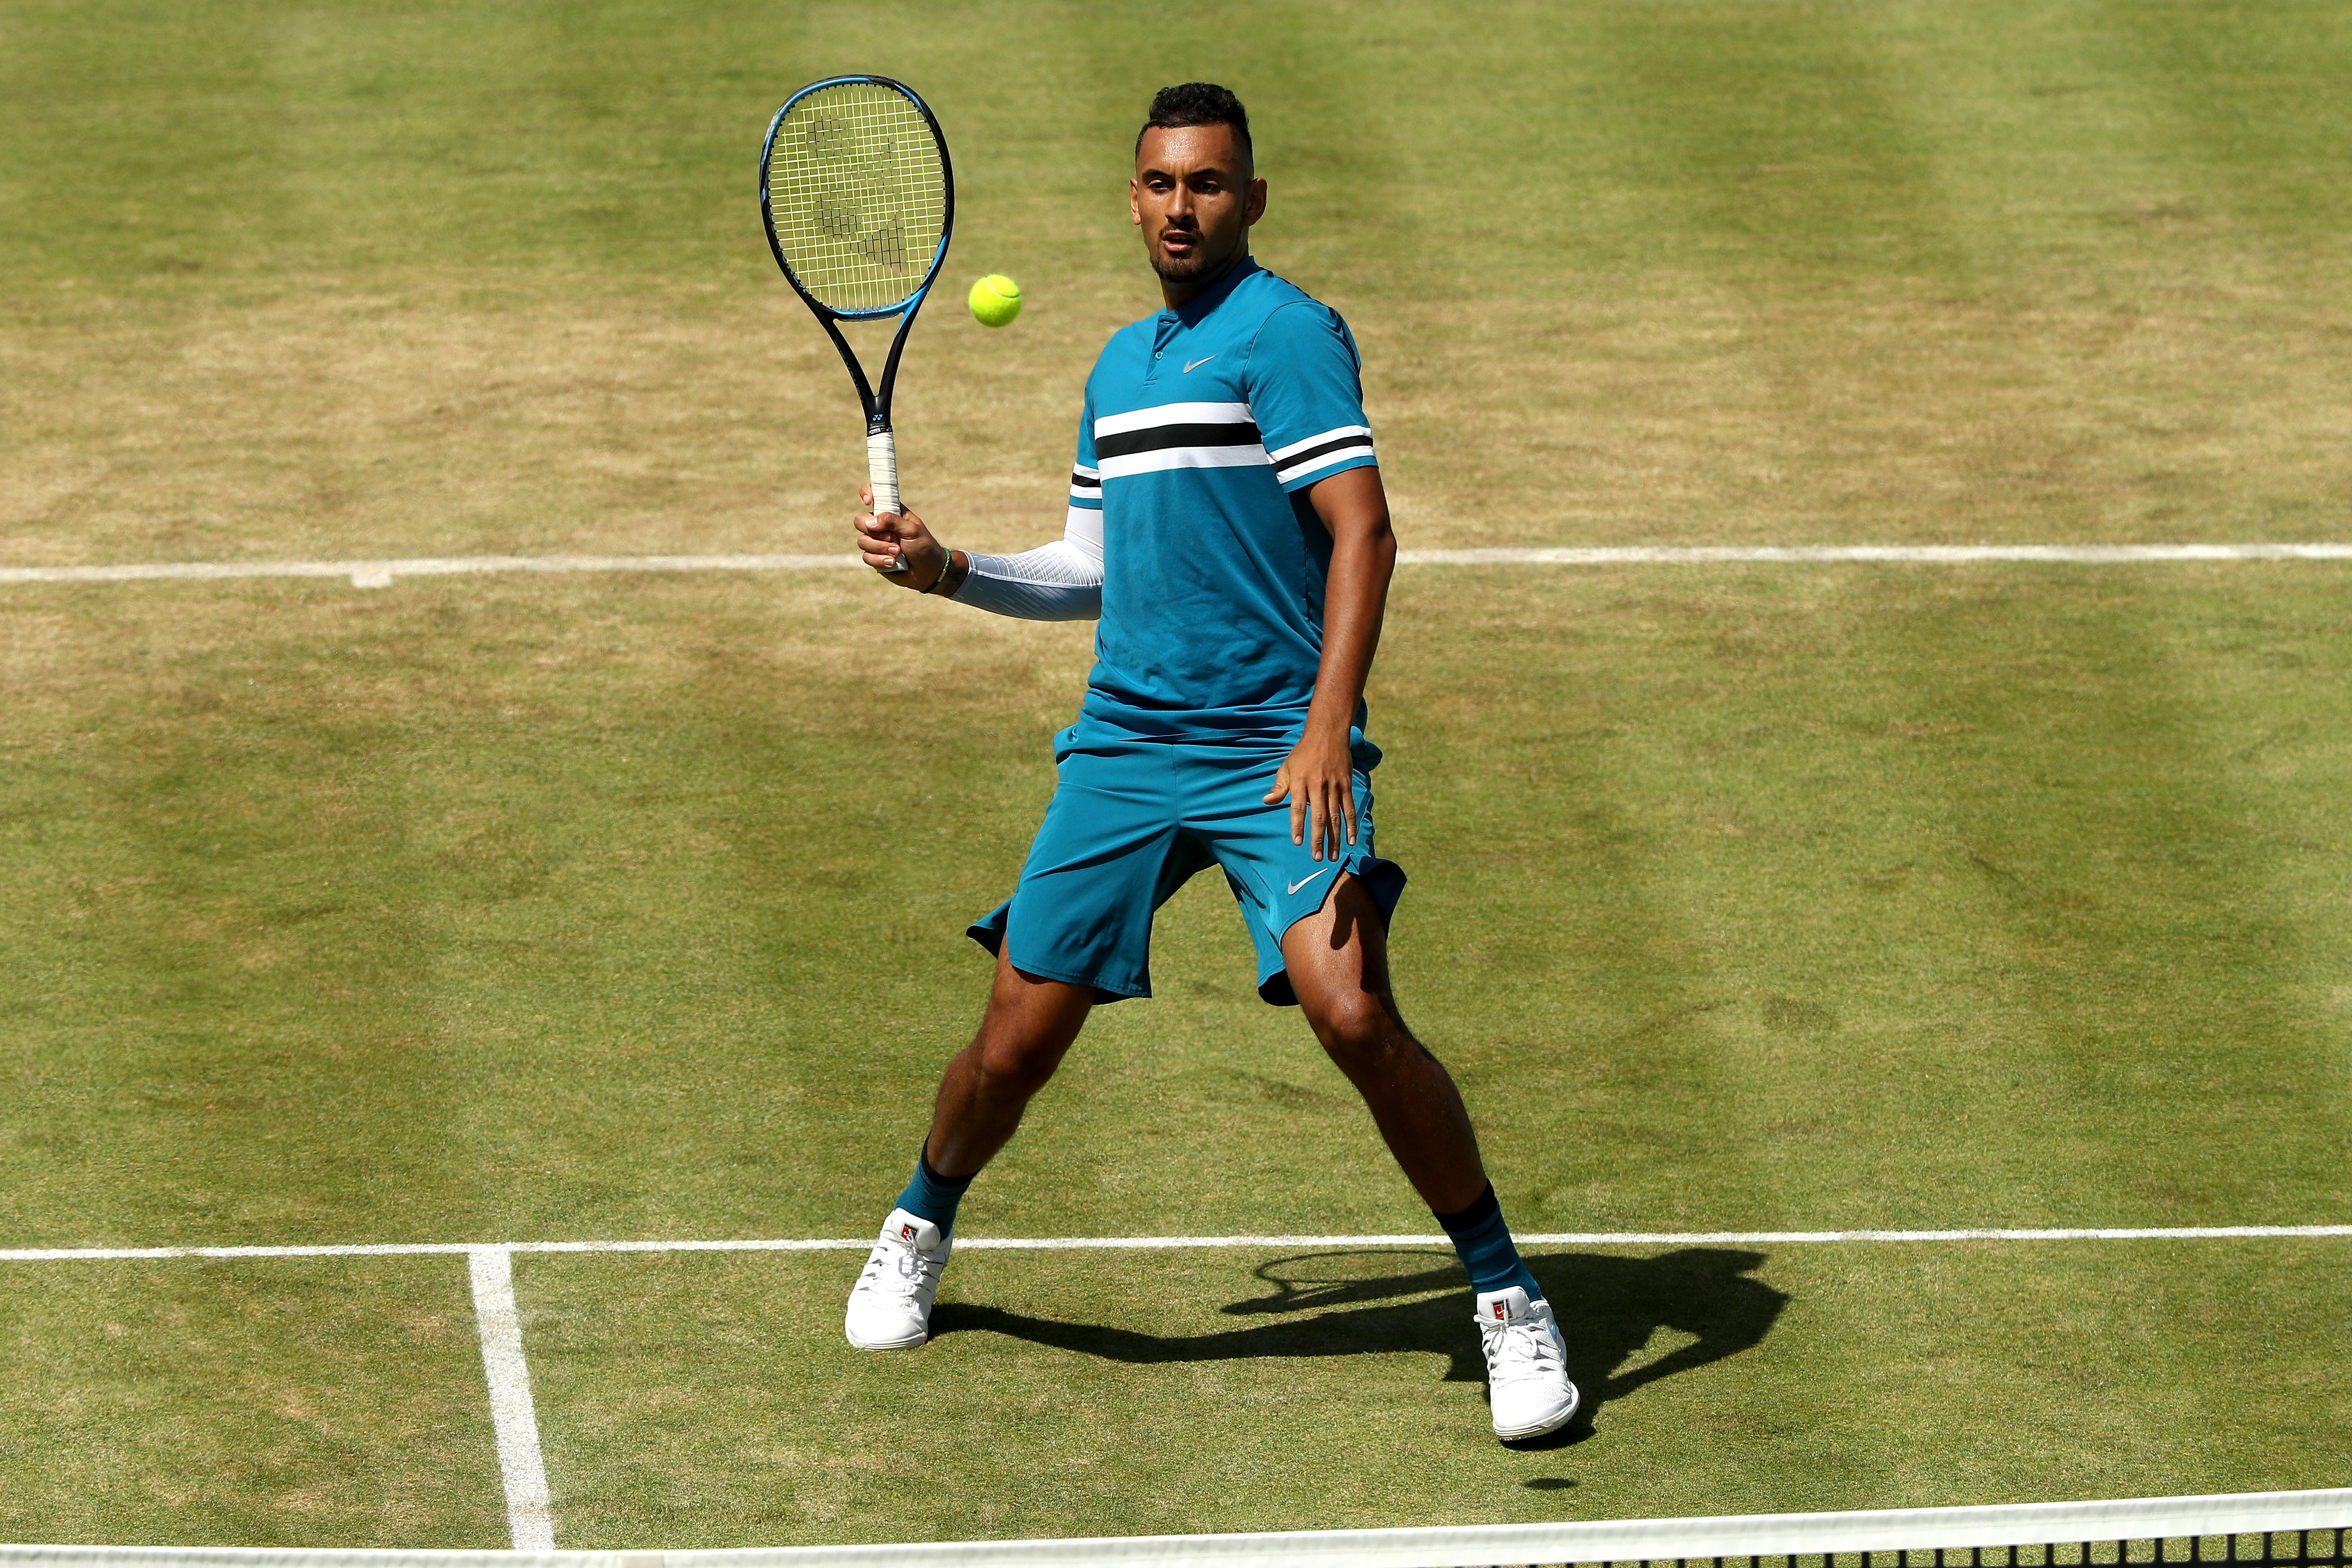 Nick Kyrgios dodges to make contact with a forehand volley against 2017 Champion Feliciano Lopez